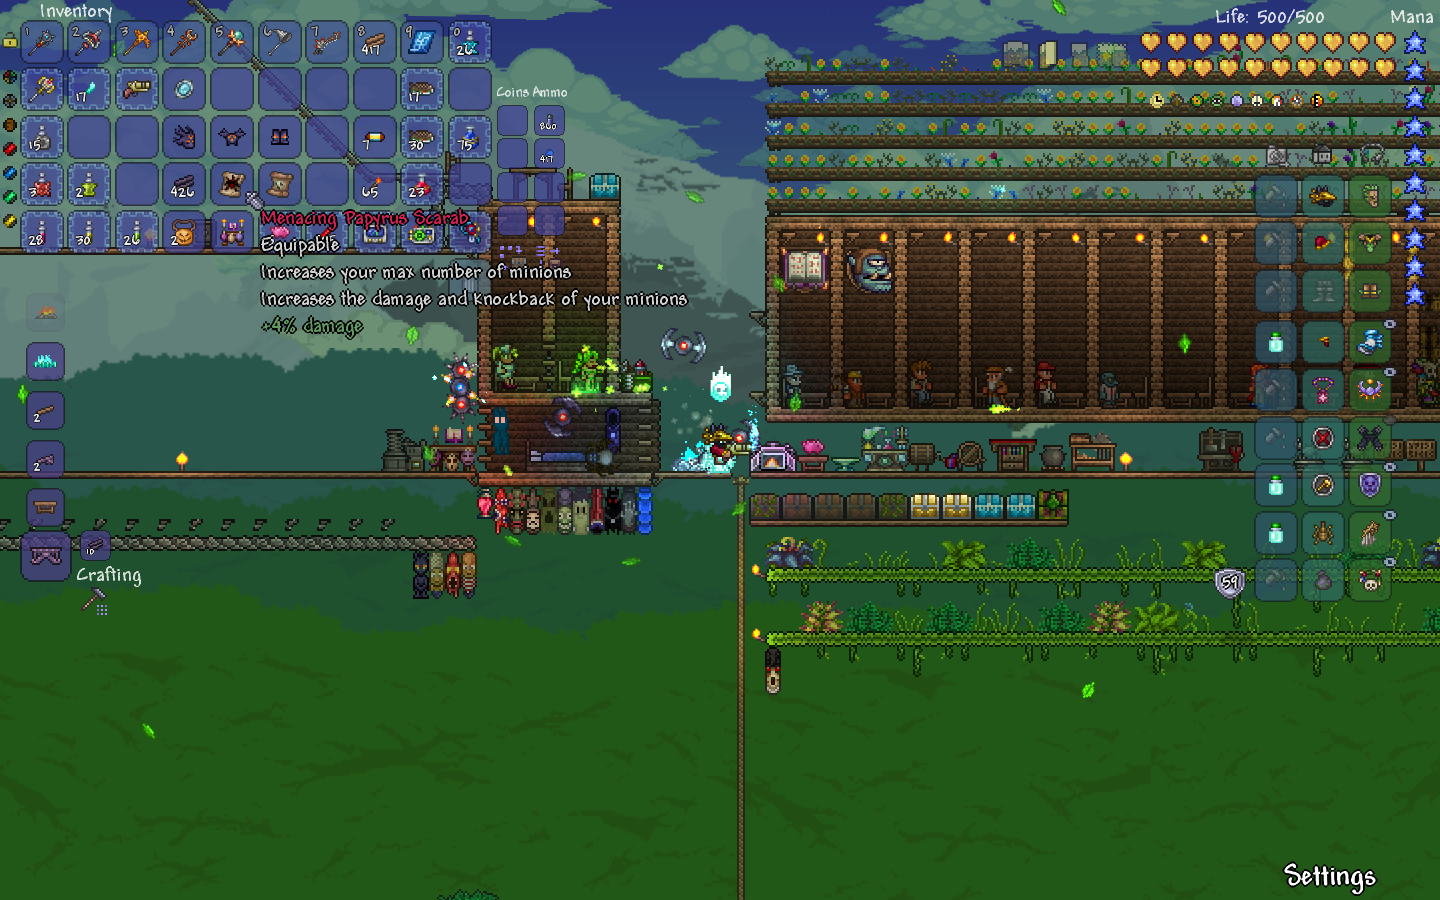 Terraria Wallpapers High Definition Wallpaper Terrarium Desktop Wallpaper